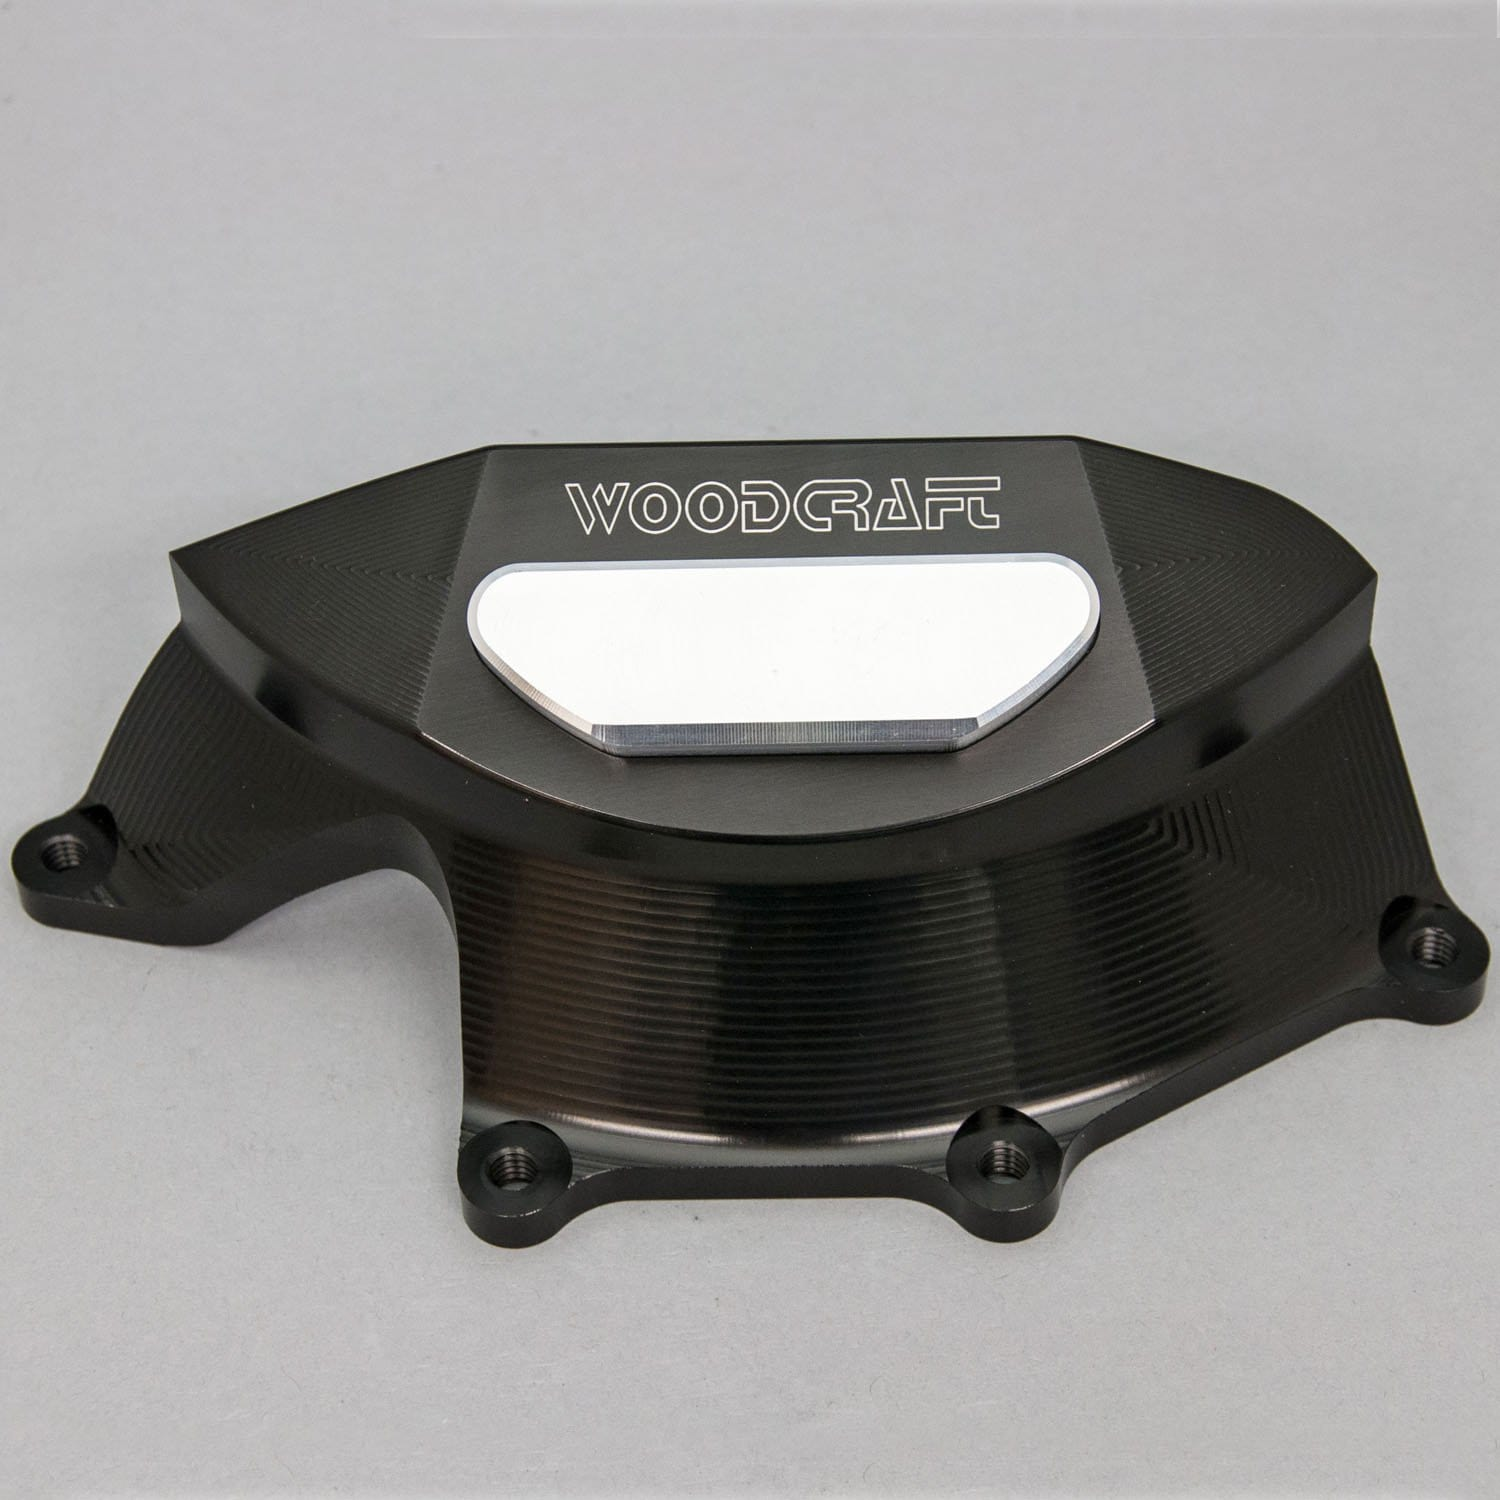 60-0740RB Aprilia RSV4/Tuono V4 RHS Clutch Cover Protector - Woodcraft Technologies - Motorcycle Parts